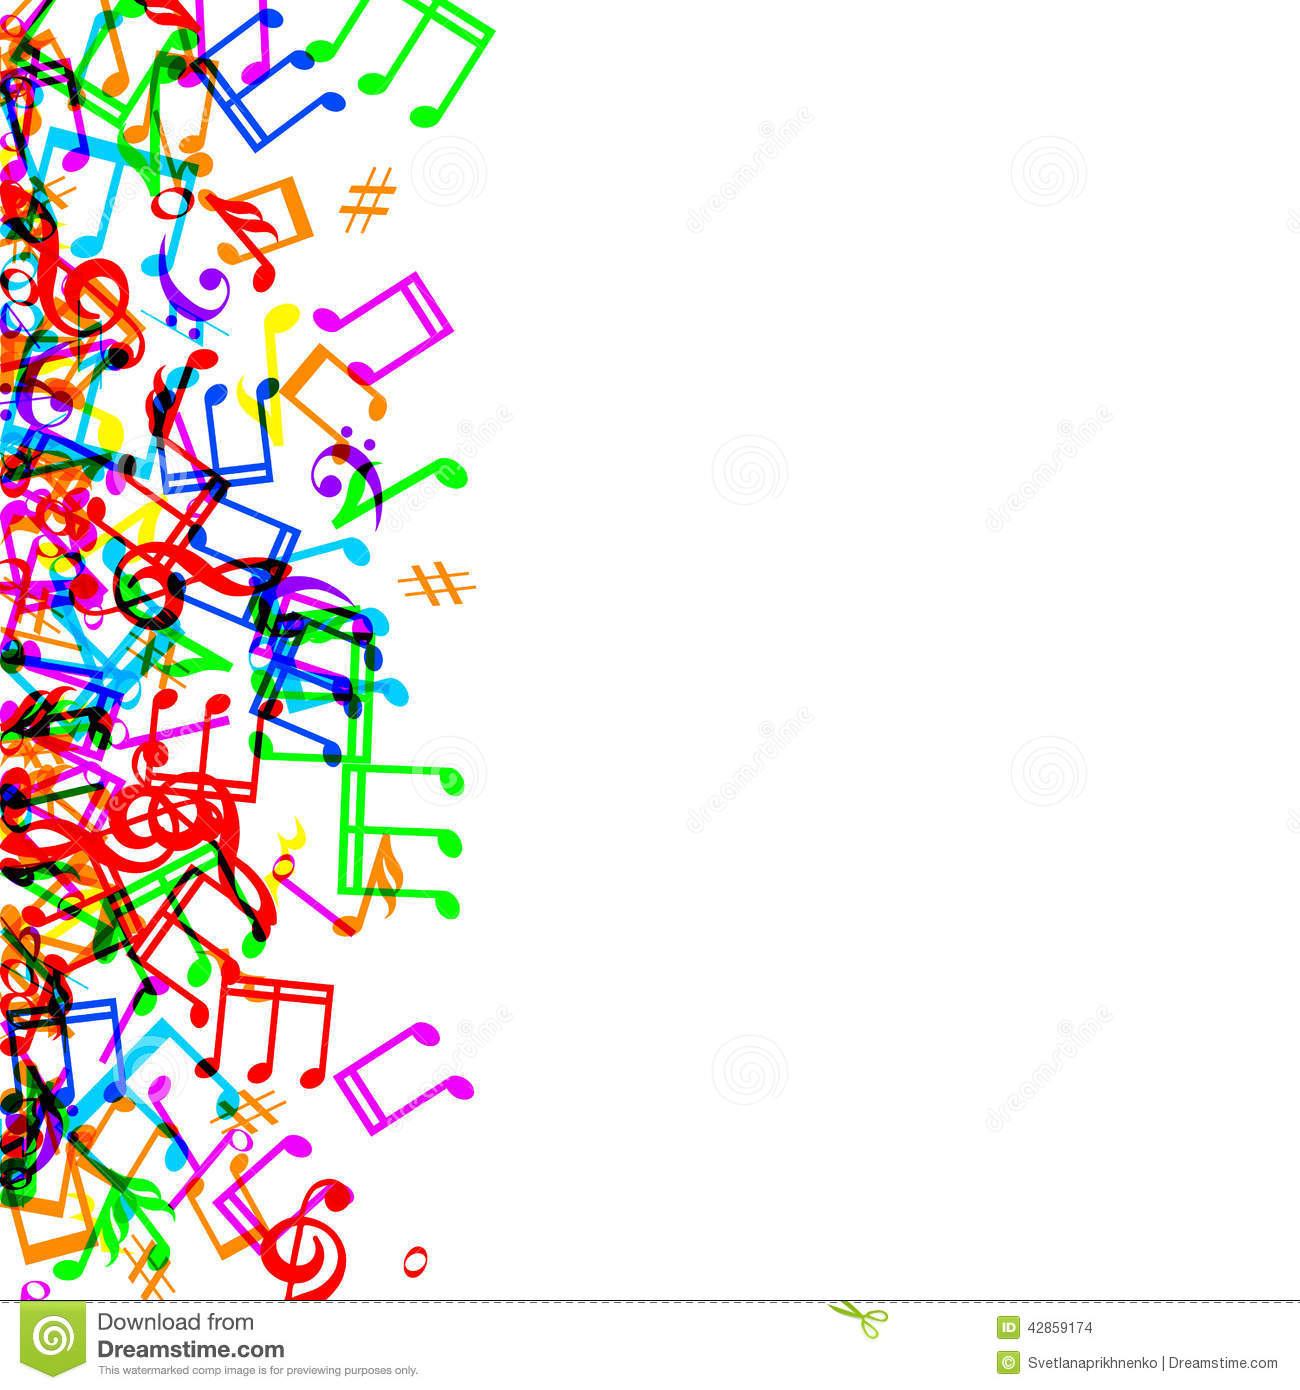 Music vector art colorful wallpaper free download png - Royalty Free Vector Background Border Colorful Frame Music White Style Sheet Illustration